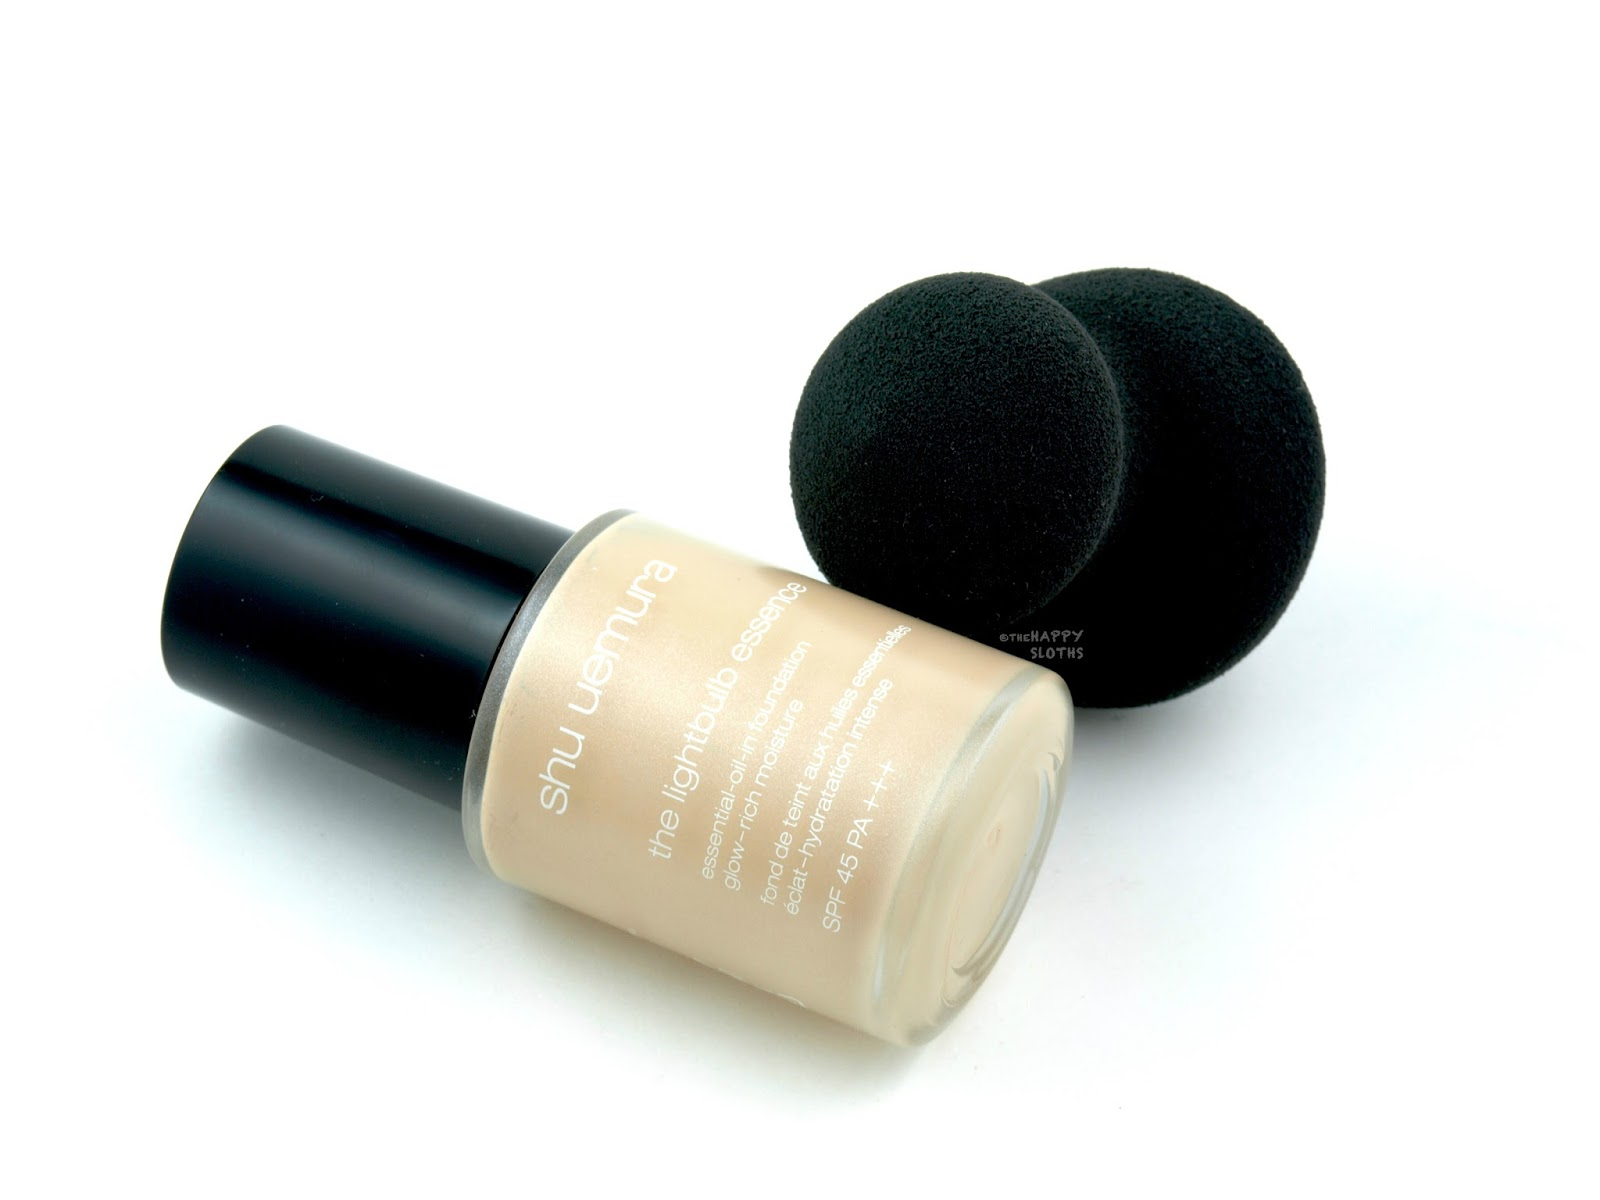 Shu Uemura Lightbulb Essence Foundation & Lightbulb Sponge: Review and Swatches